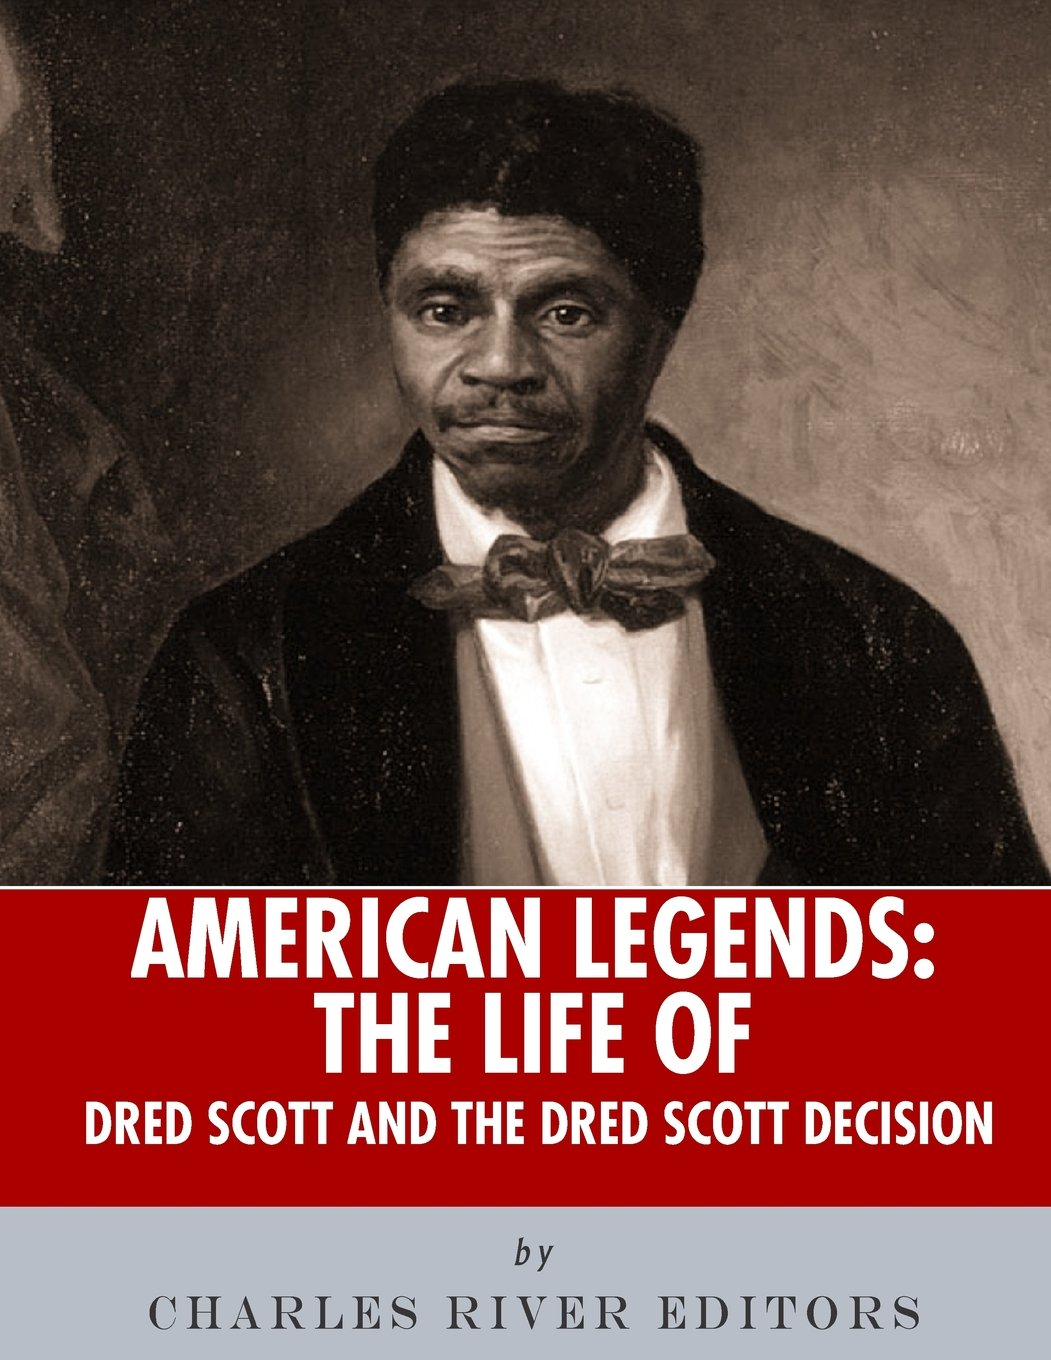 American Legends: The Life of Dred Scott and the Dred Scott Decision pdf